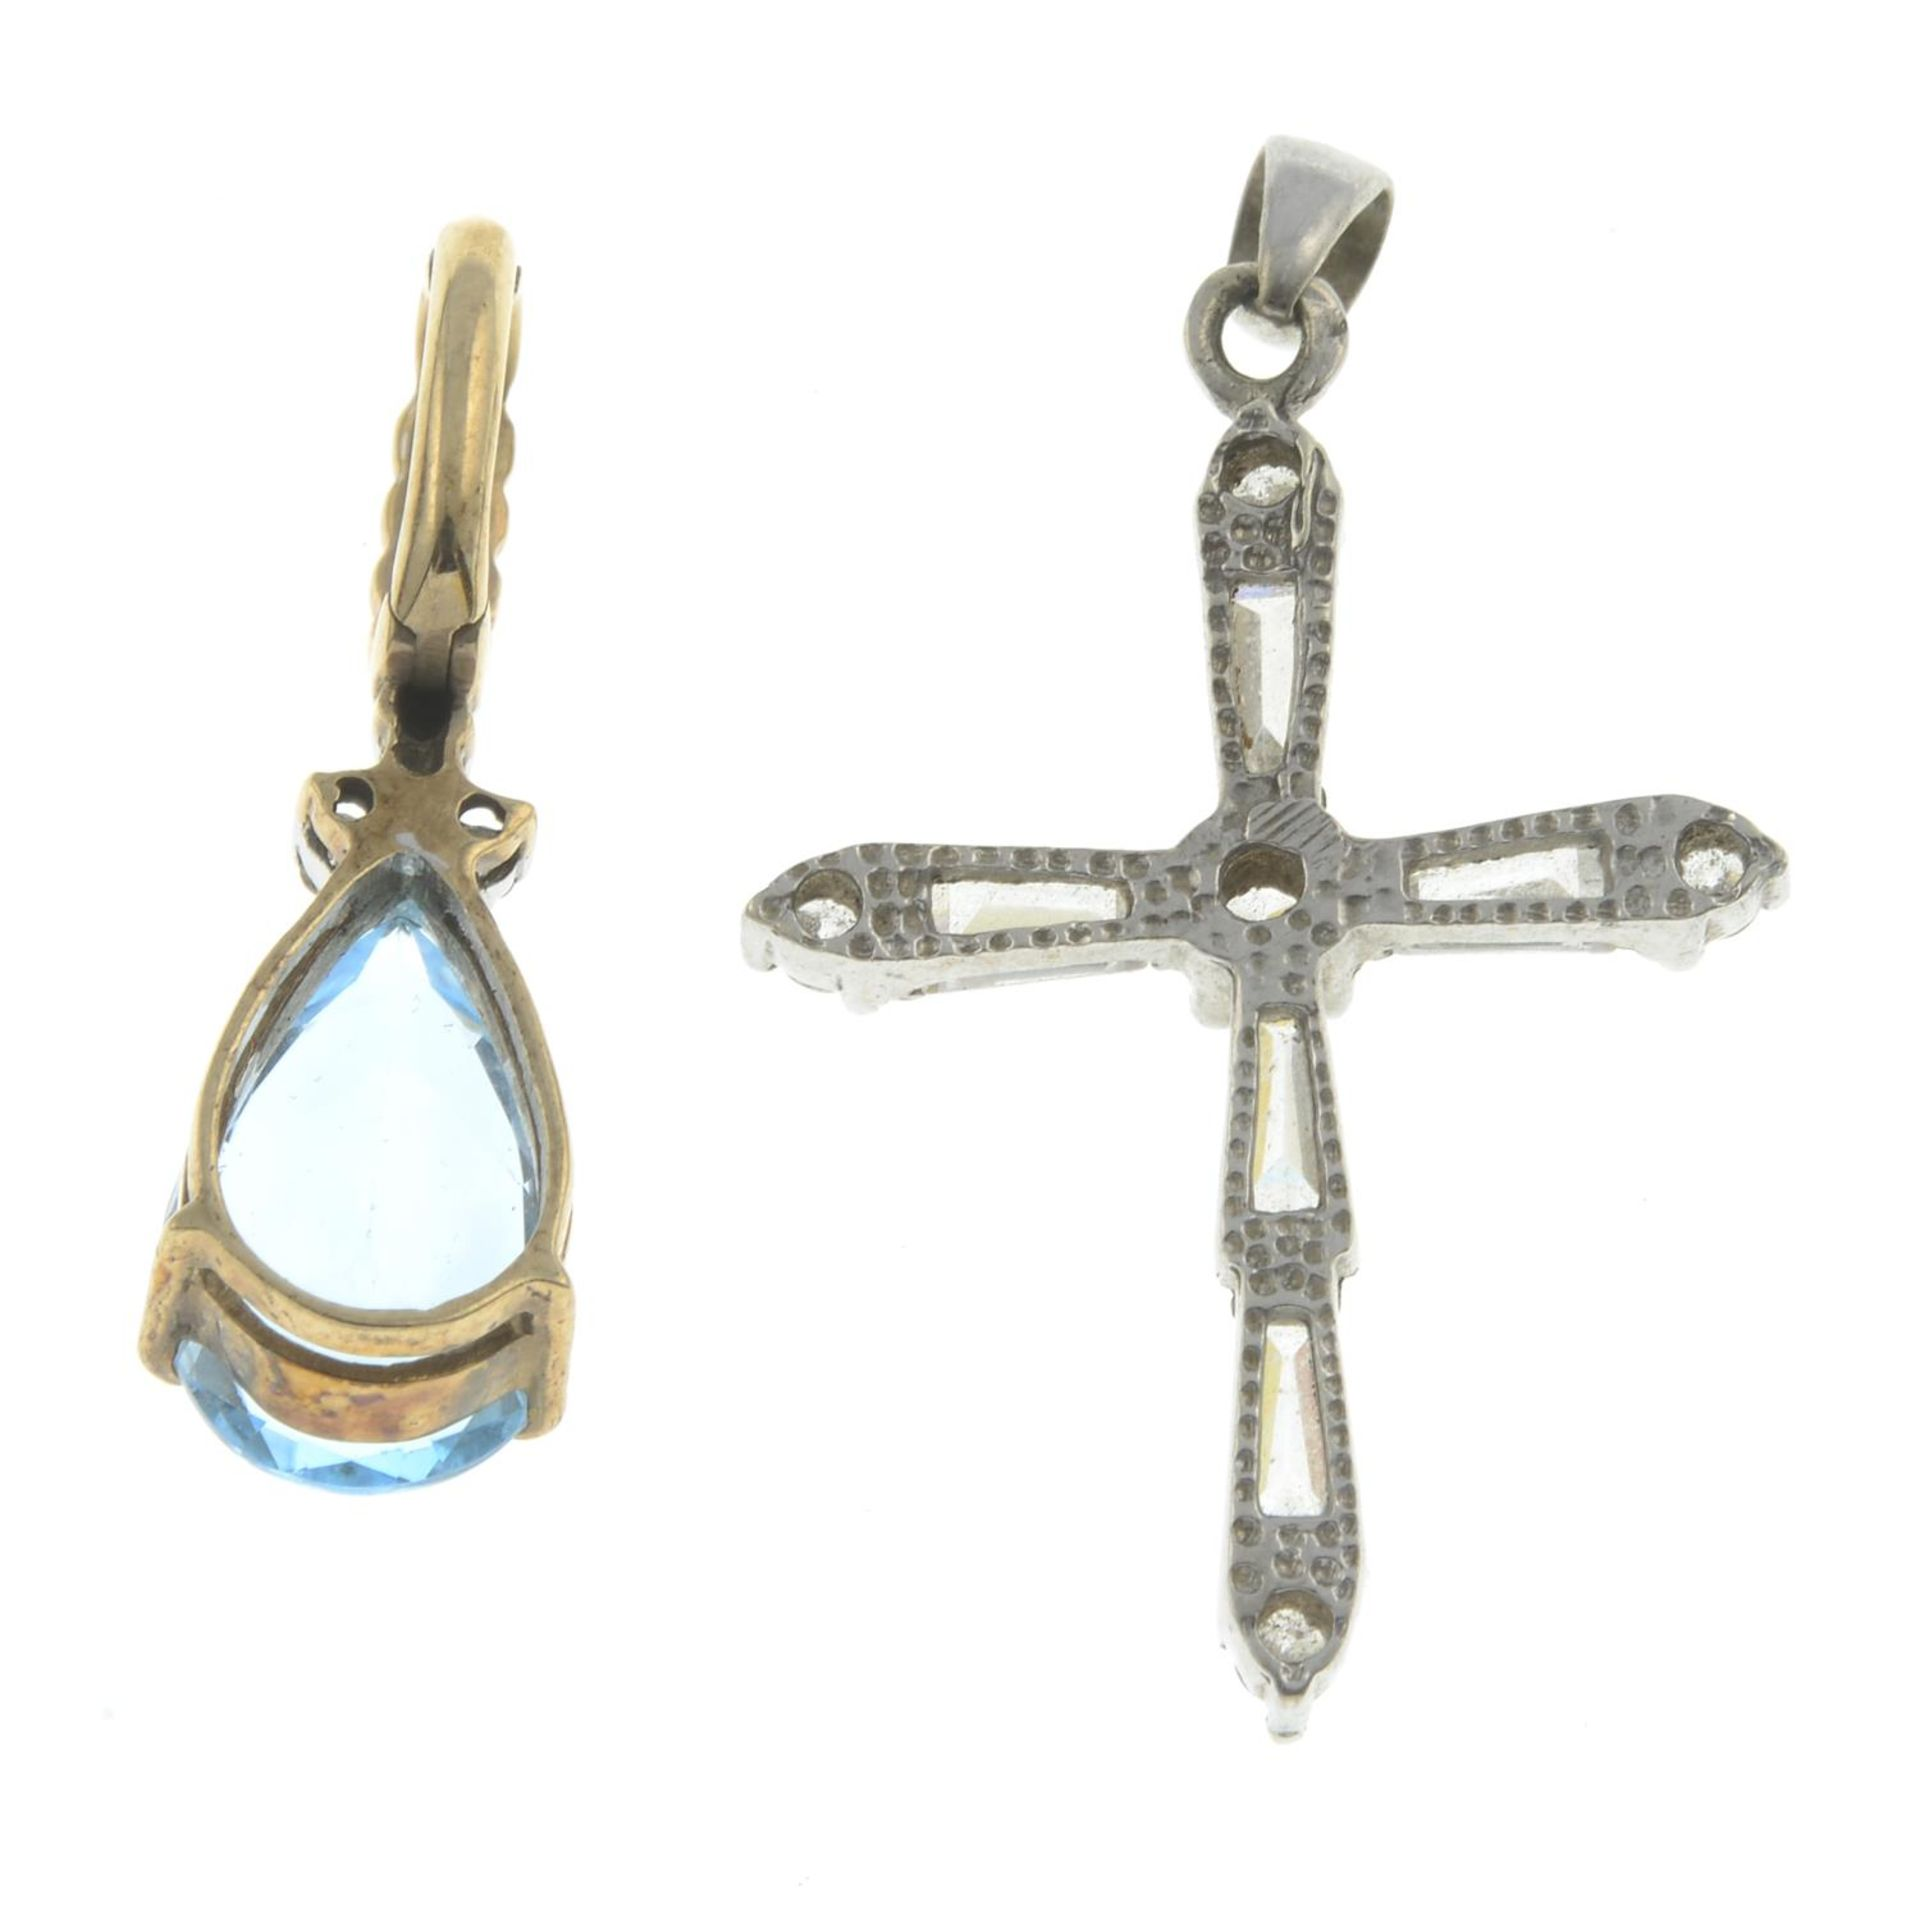 Two gem-set pendants.9ct gold topaz and diamond pendant, - Image 2 of 2